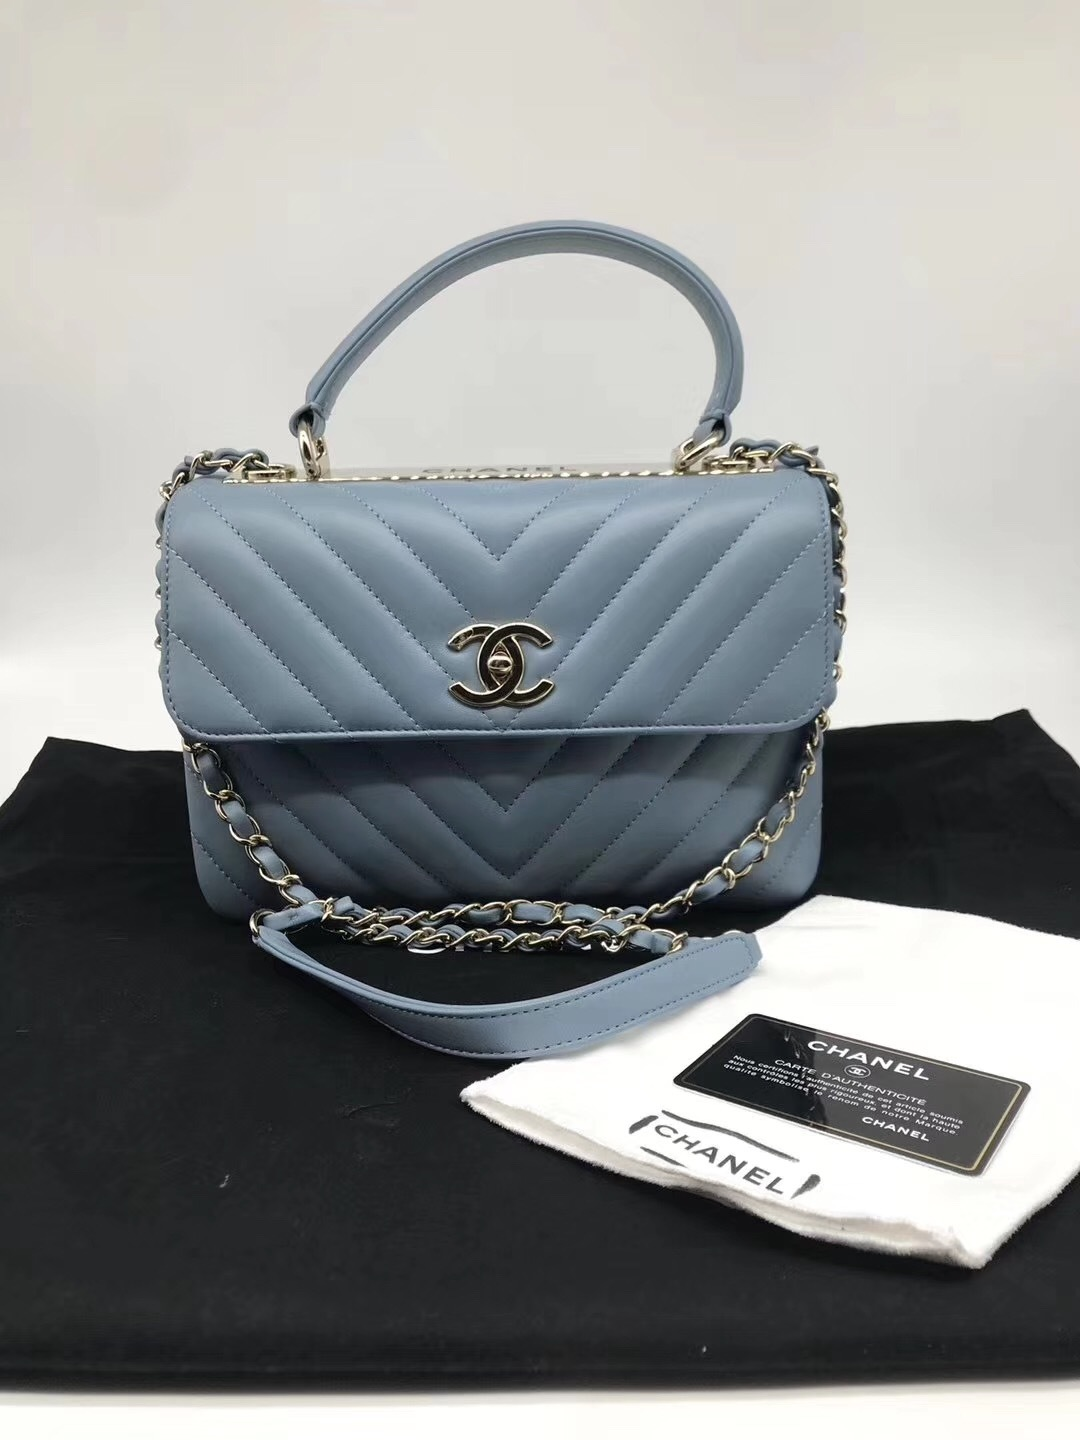 AUTHENTIC CHANEL BLUE CHEVRON LAMBSKIN TRENDY CC 2 WAY HANDLE FLAP BAG GHW